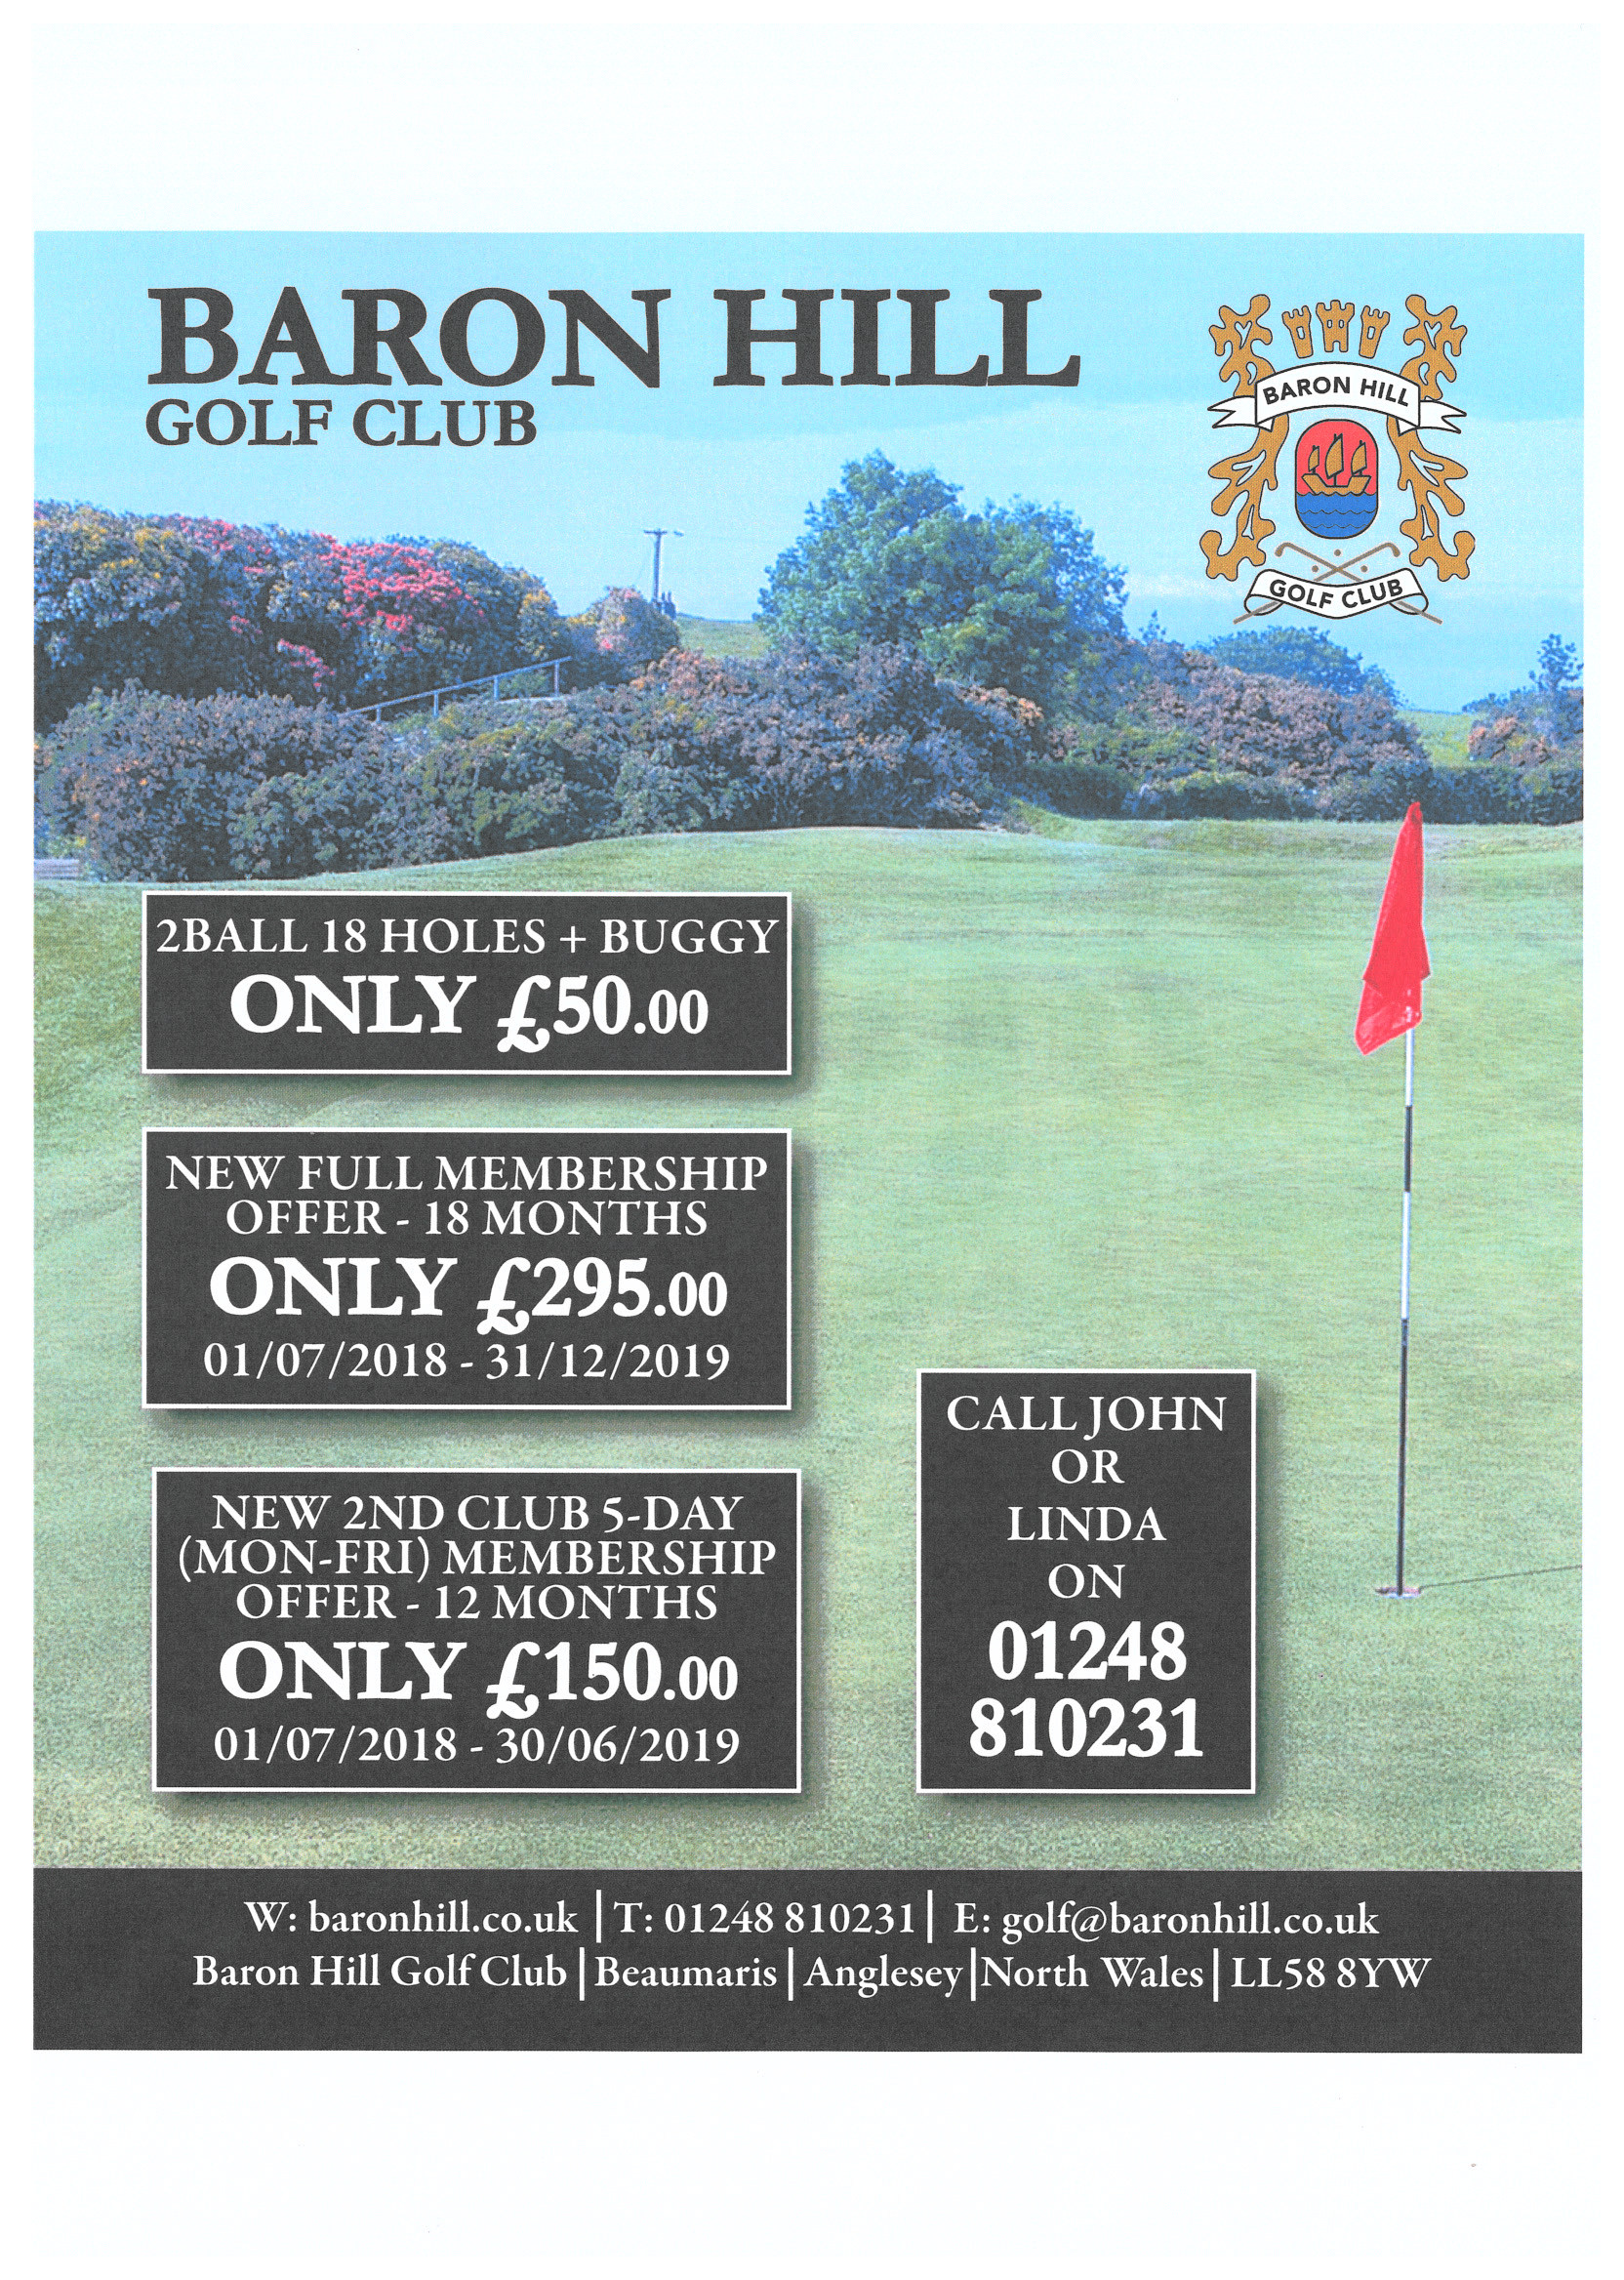 SUMMER OFFERS FOR NEW MEMBERS & GREEN FEES